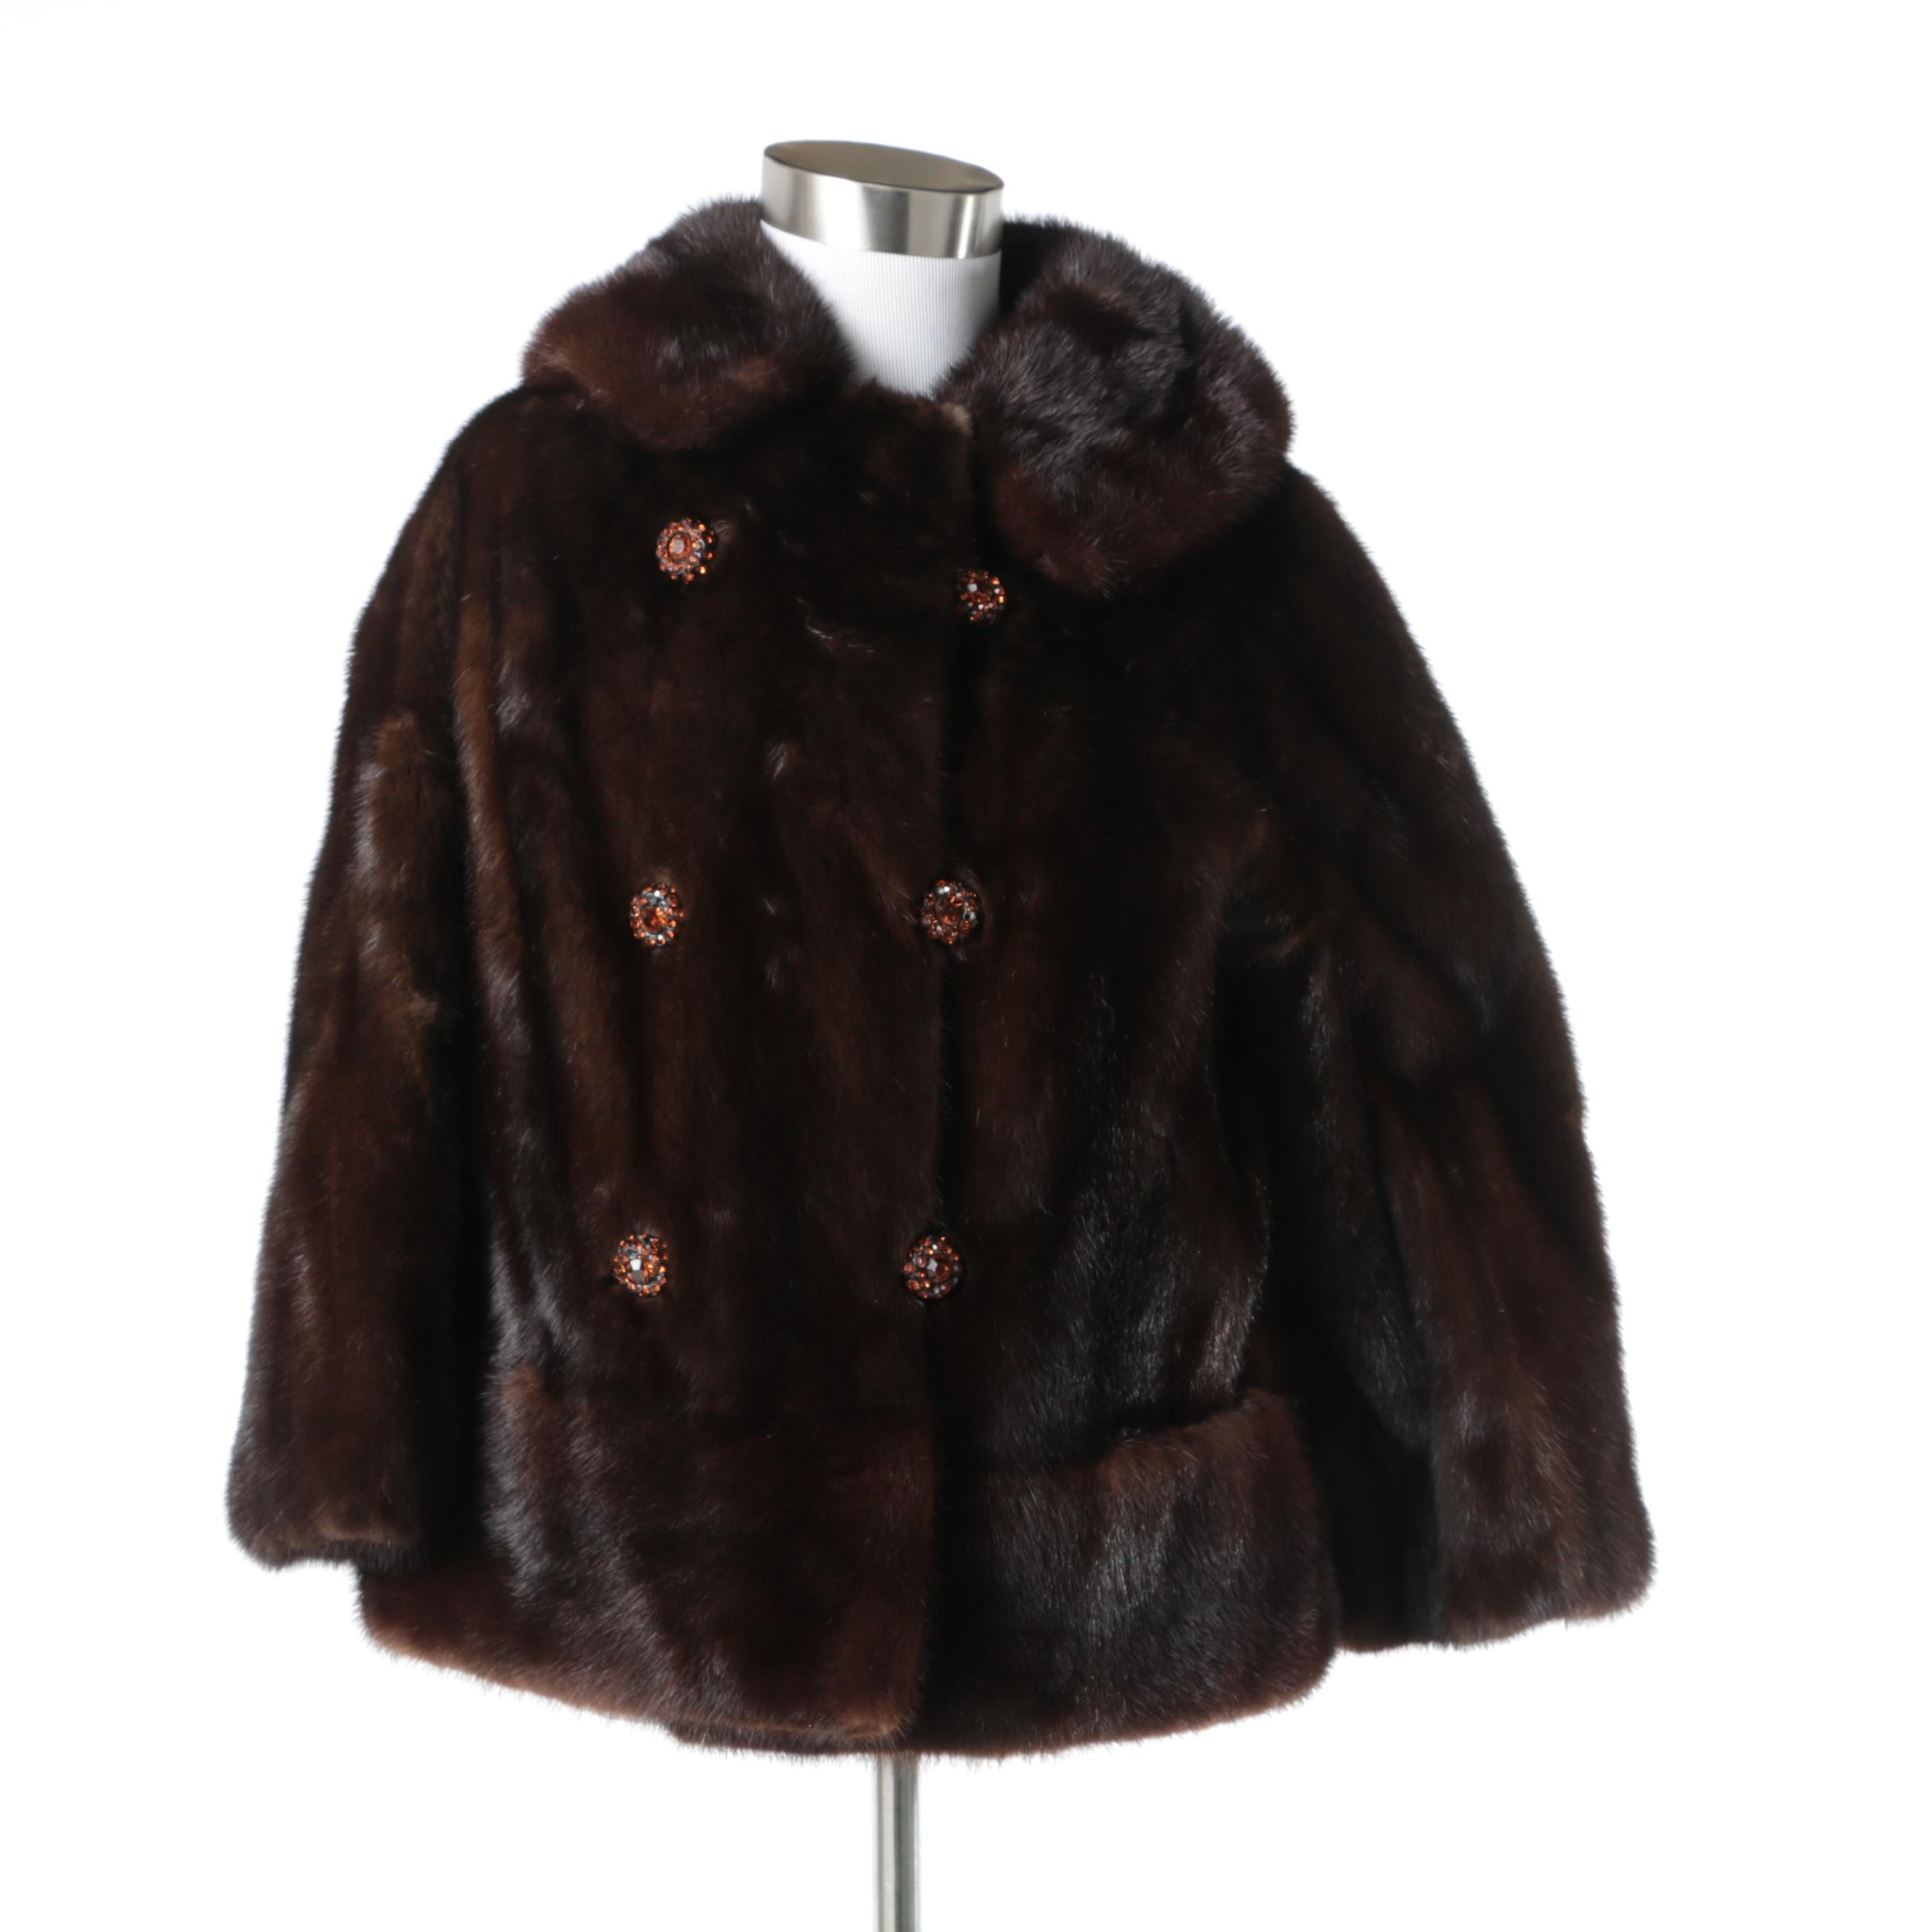 Women's Vintage Chocolate Mink Fur Coat